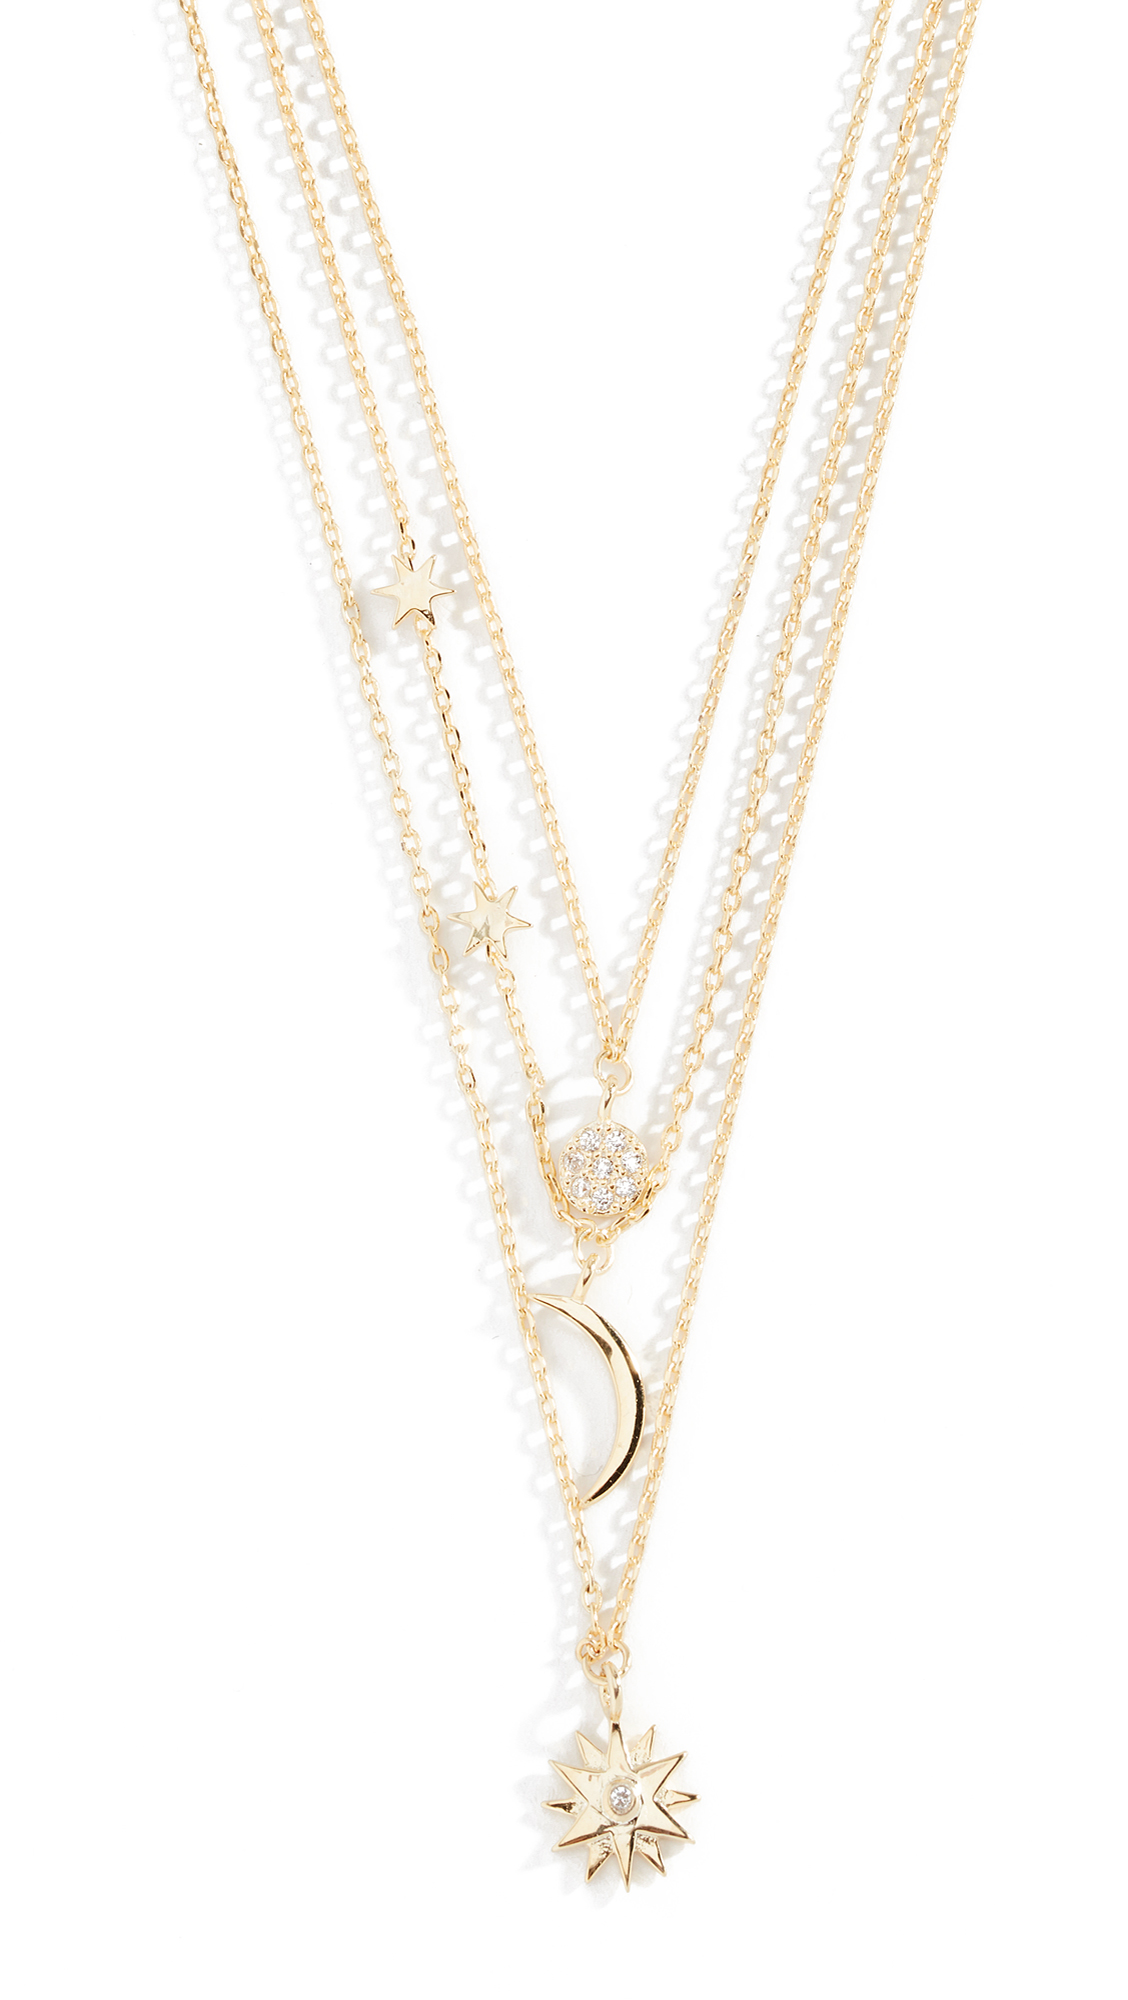 JULES SMITH CELESTIAL NECKLACE